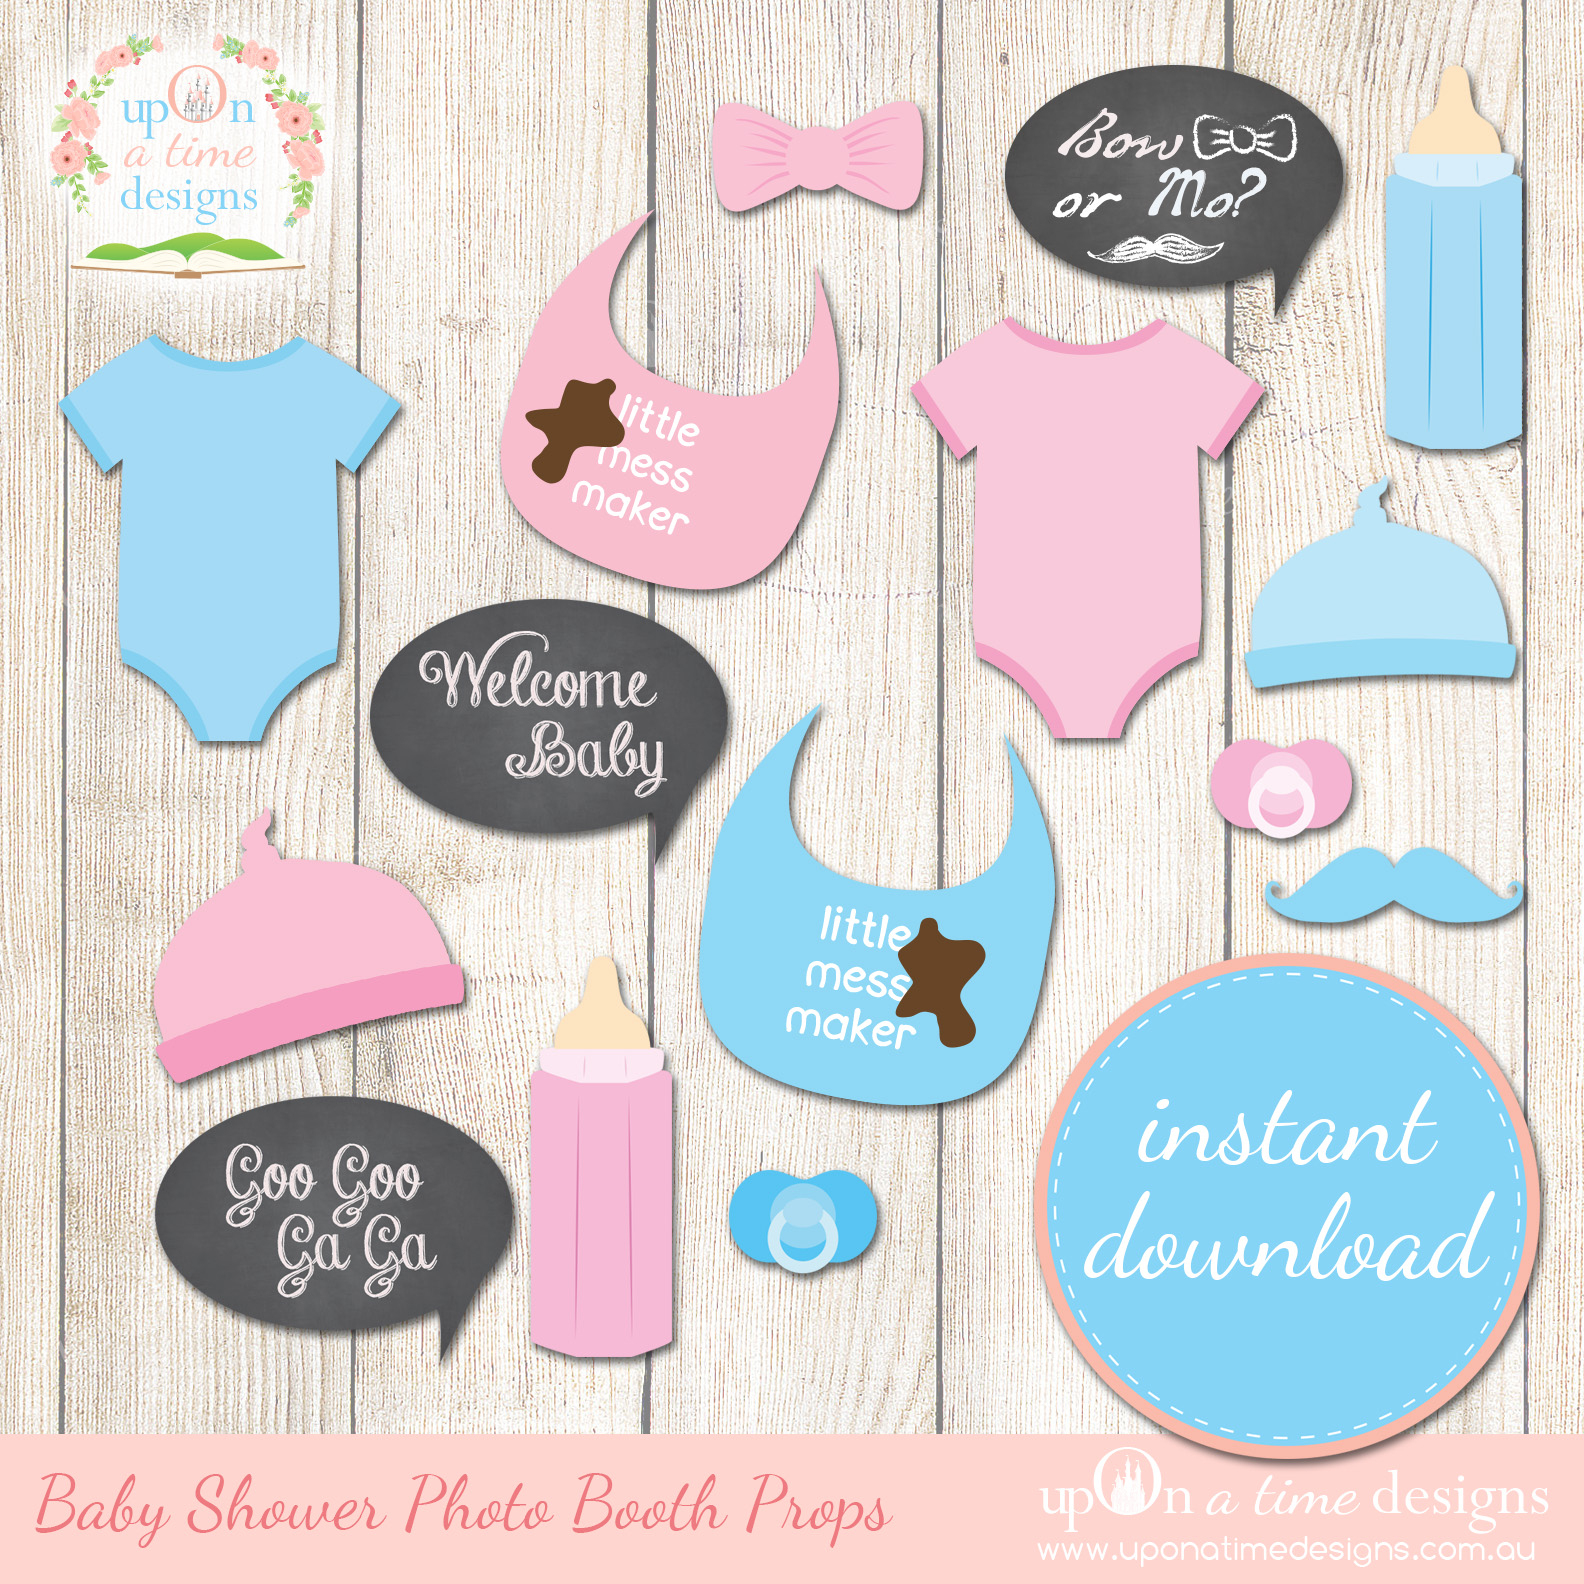 8 Best Images Of Free Printable Baby Shower Props Booth Kohler - Free Printable Boy Baby Shower Photo Booth Props